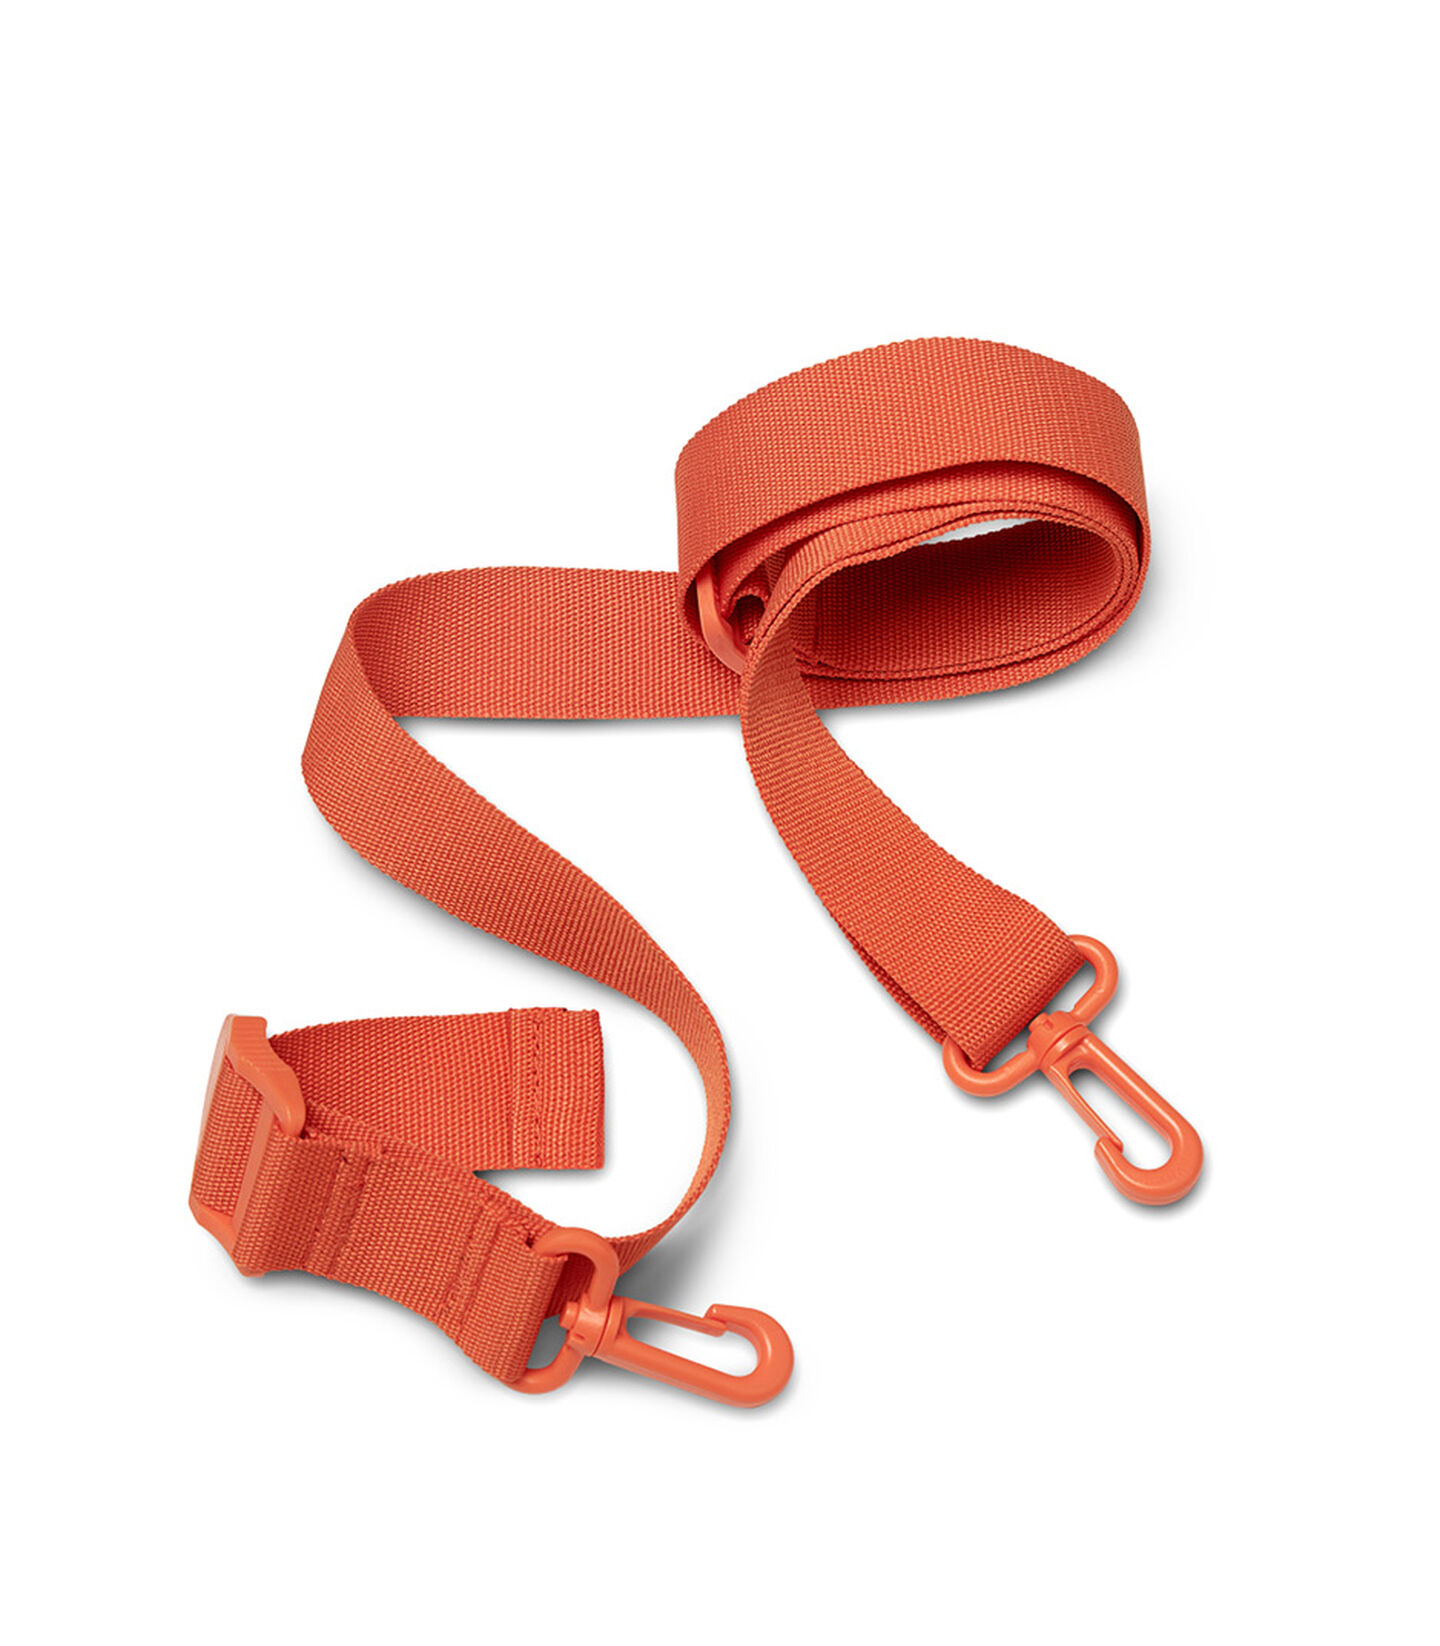 JetKids by Stokke® BedBox Strap Orange, Orange, mainview